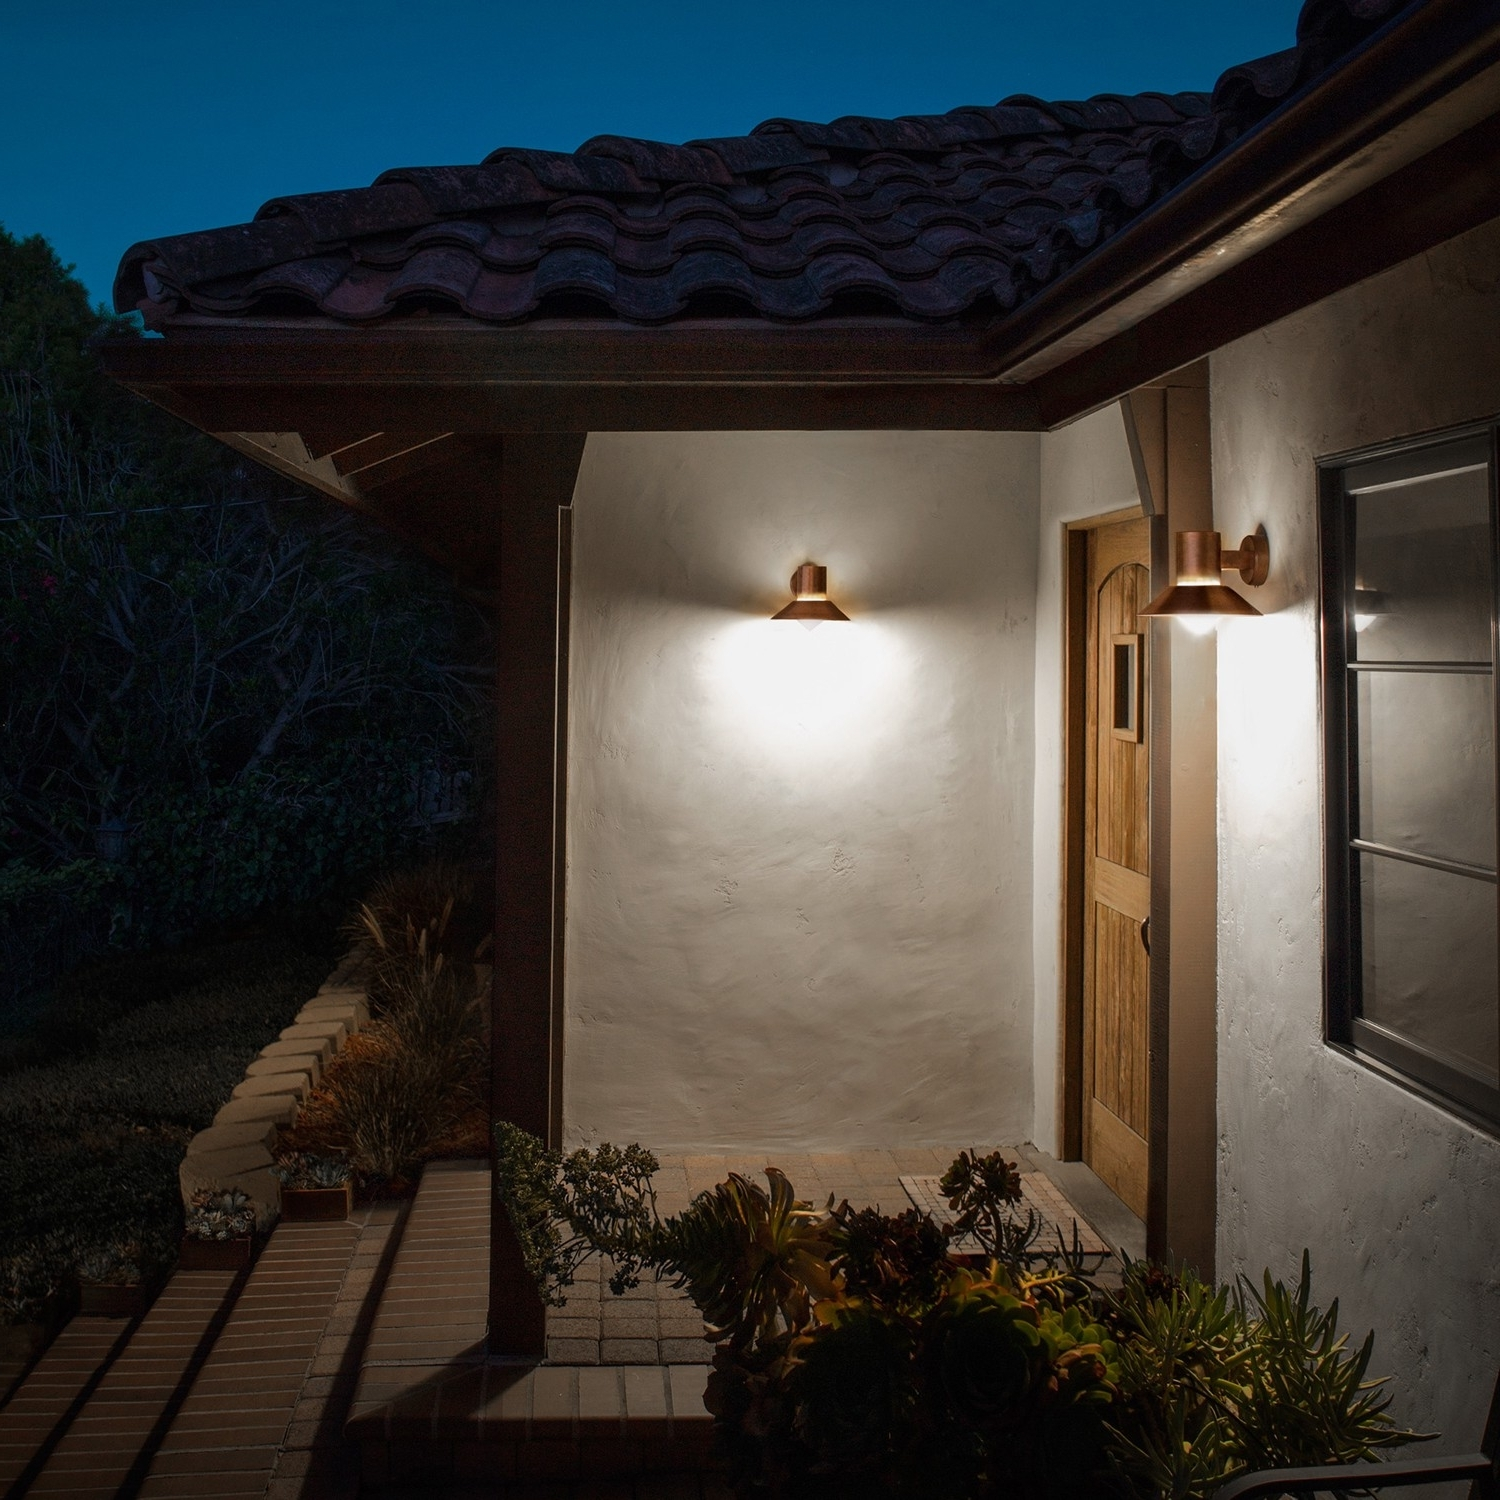 Contemporary Outdoor Wall Lighting Fixtures Intended For Most Up To Date How To Choose Modern Outdoor Lighting (View 18 of 20)